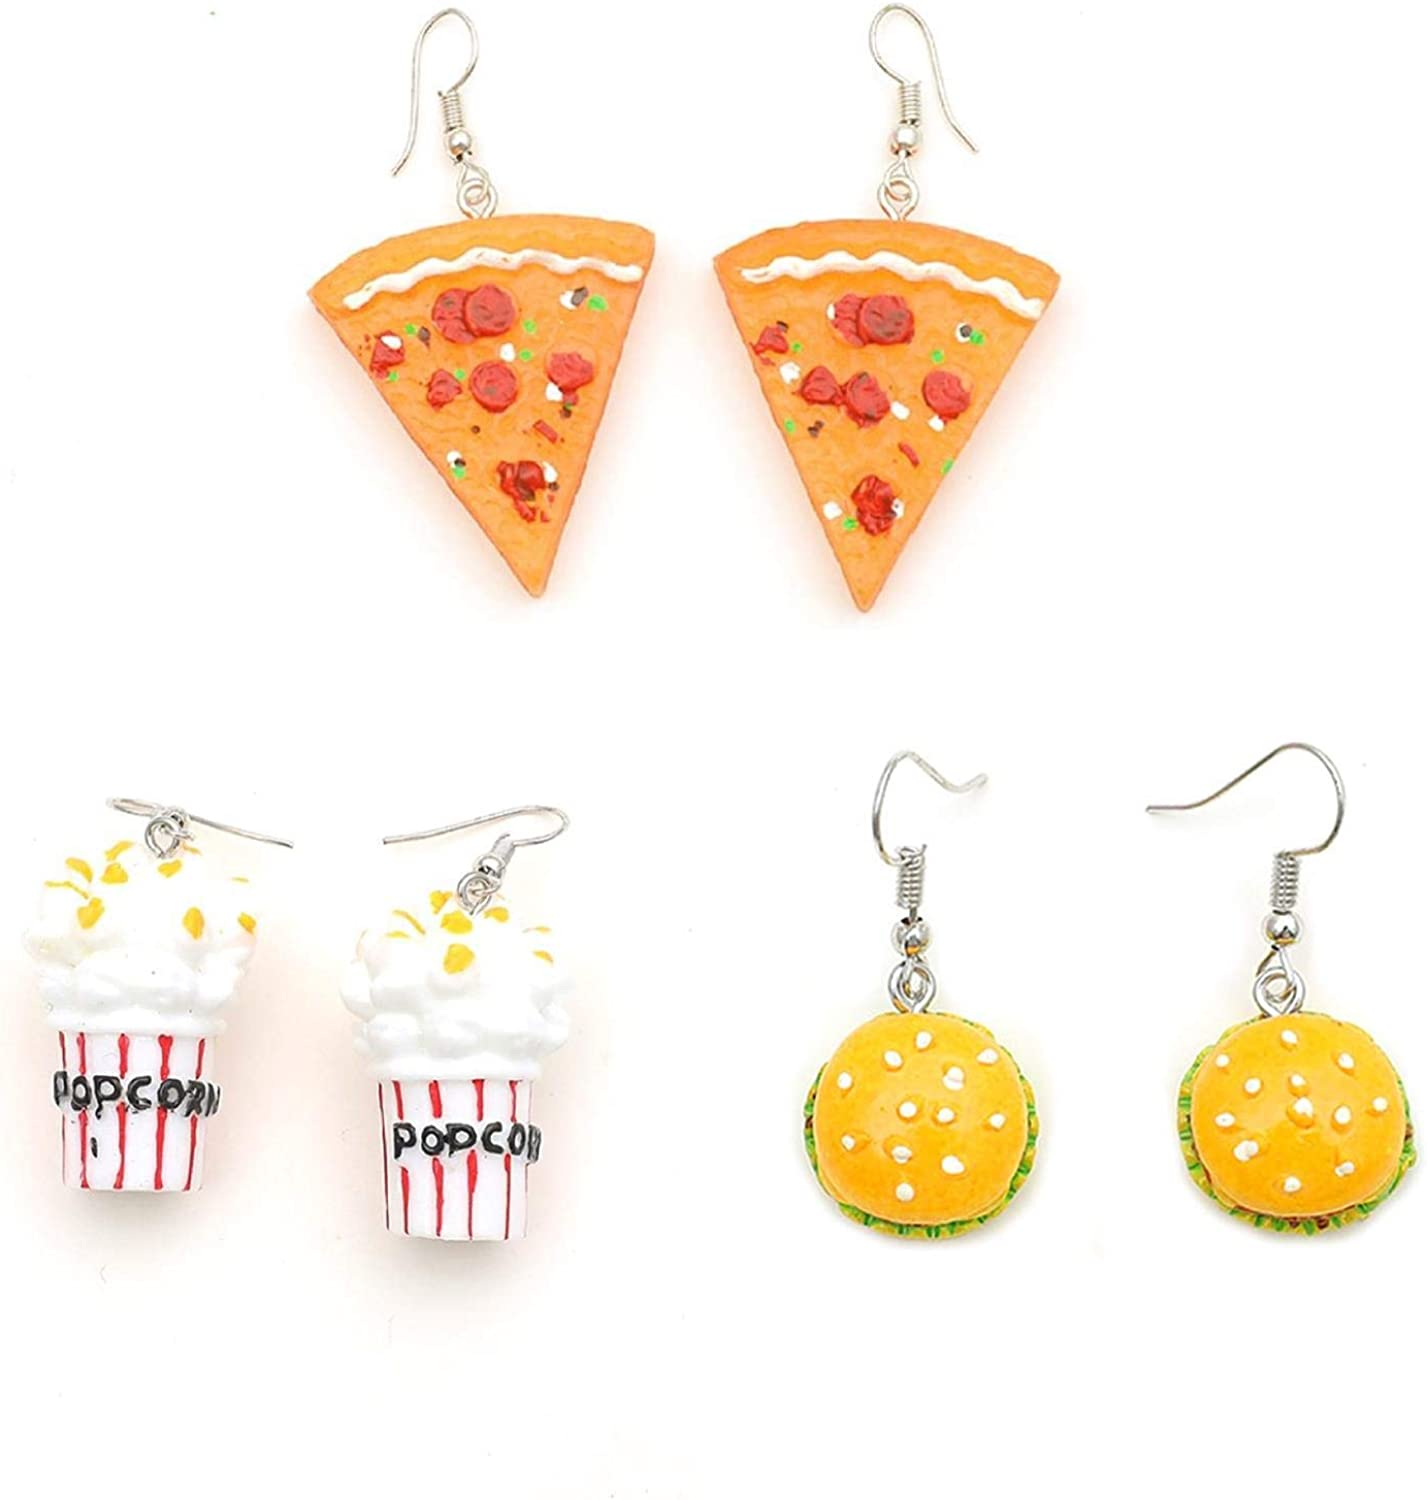 3 Pairs Pizza Hamburger Popcorn Dangle Earrings Set Polymer Clay Handmade Simulation Food Drop Earrings Cute Unique Resin Novelty Food Earrings Set for Women Girls Jewelry